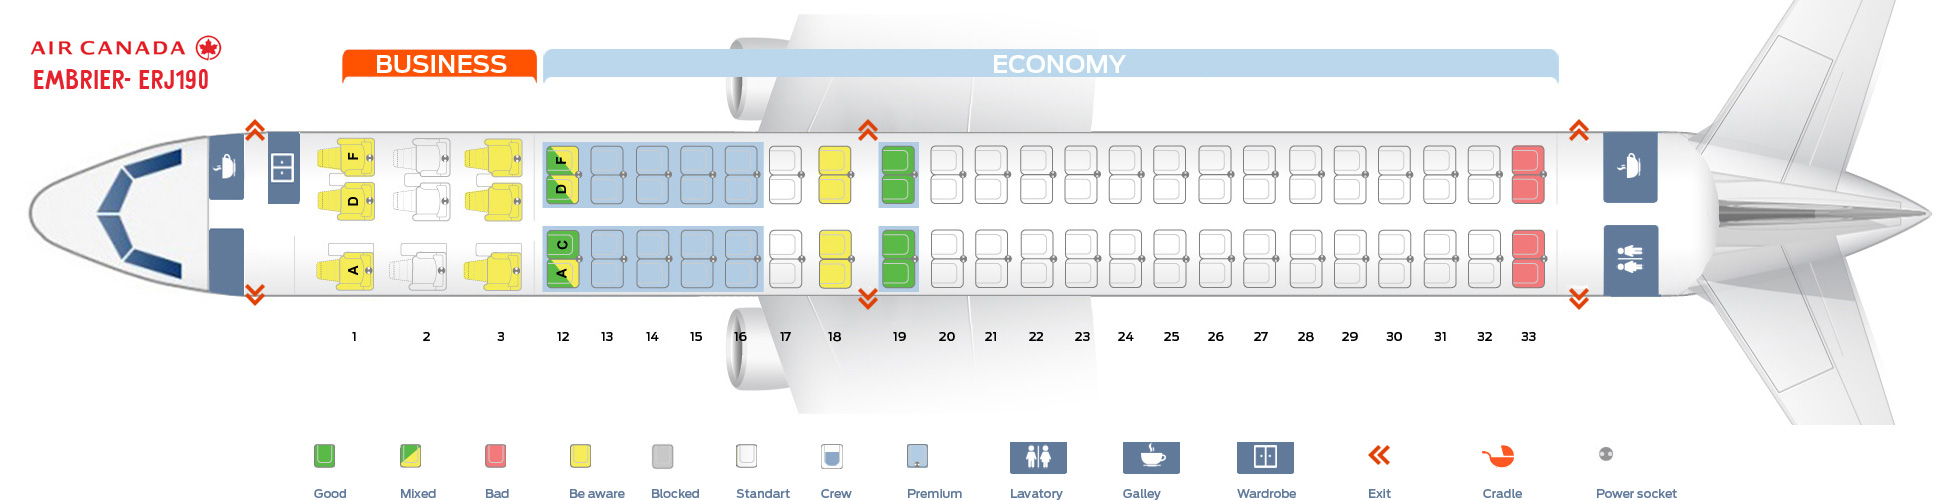 Seat map Embrier ERJ-190 Air Canada